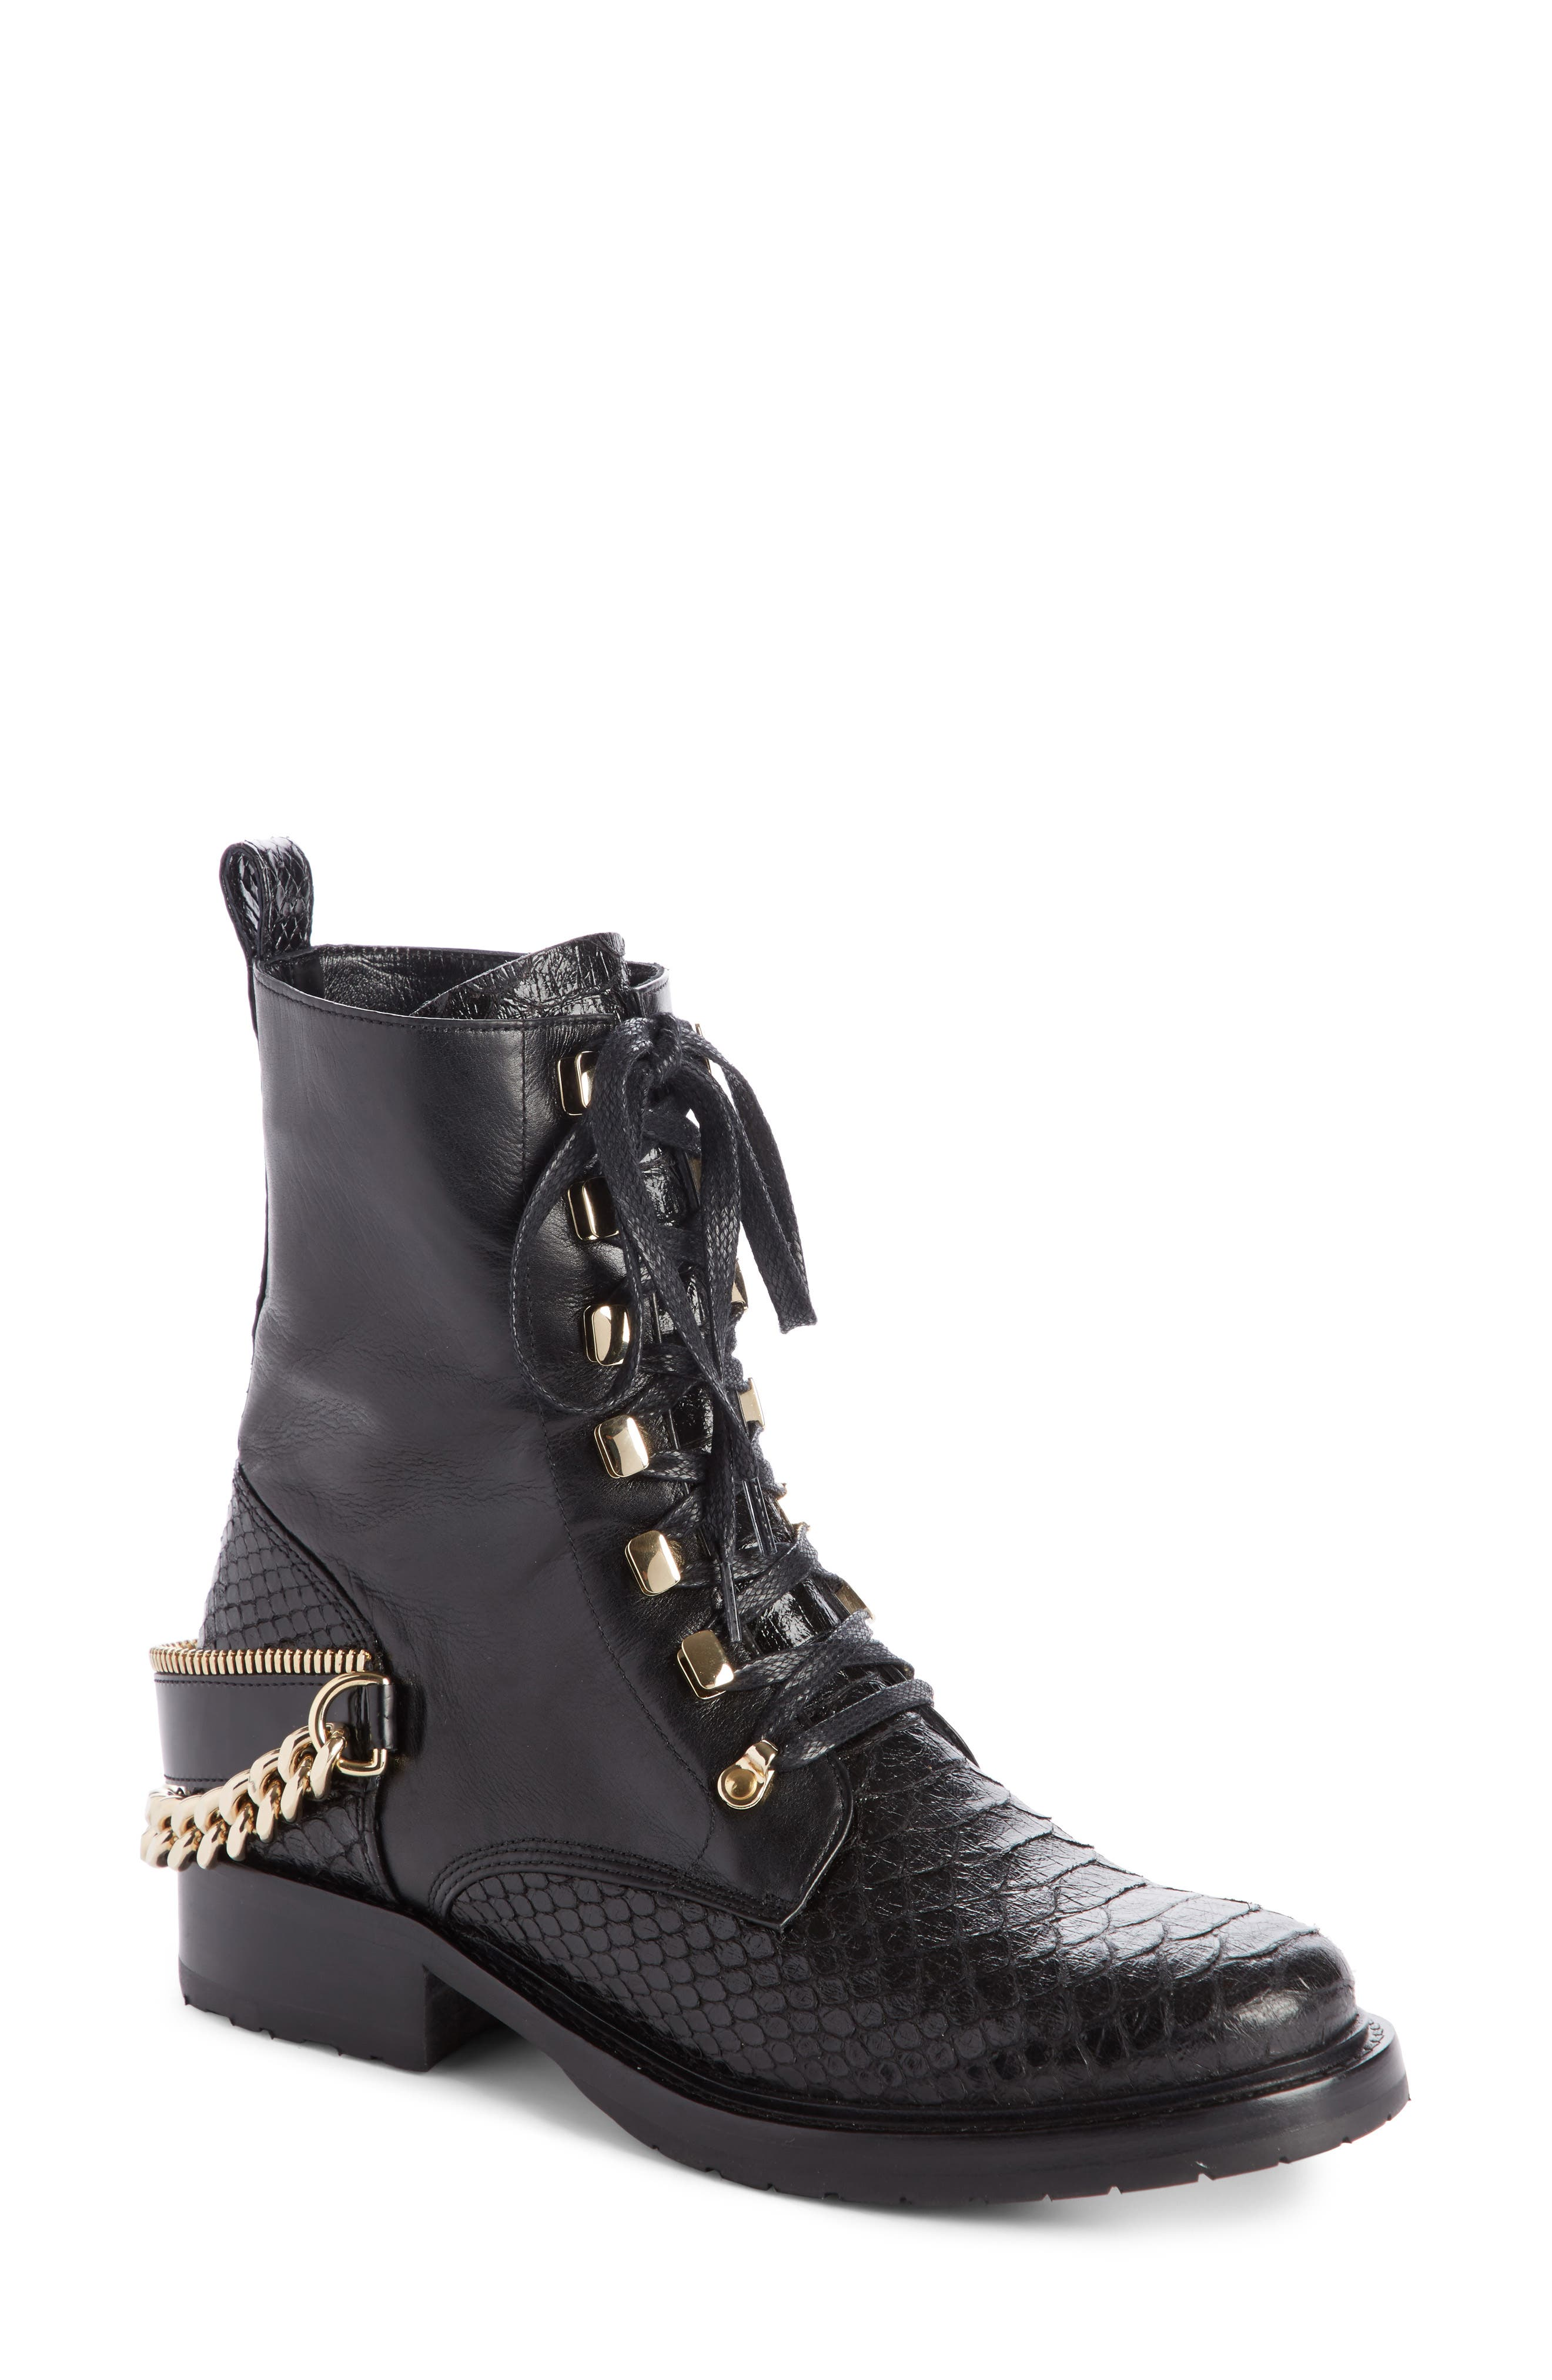 Alternate Image 1 Selected - Lanvin Chain Biker Boot (Women)